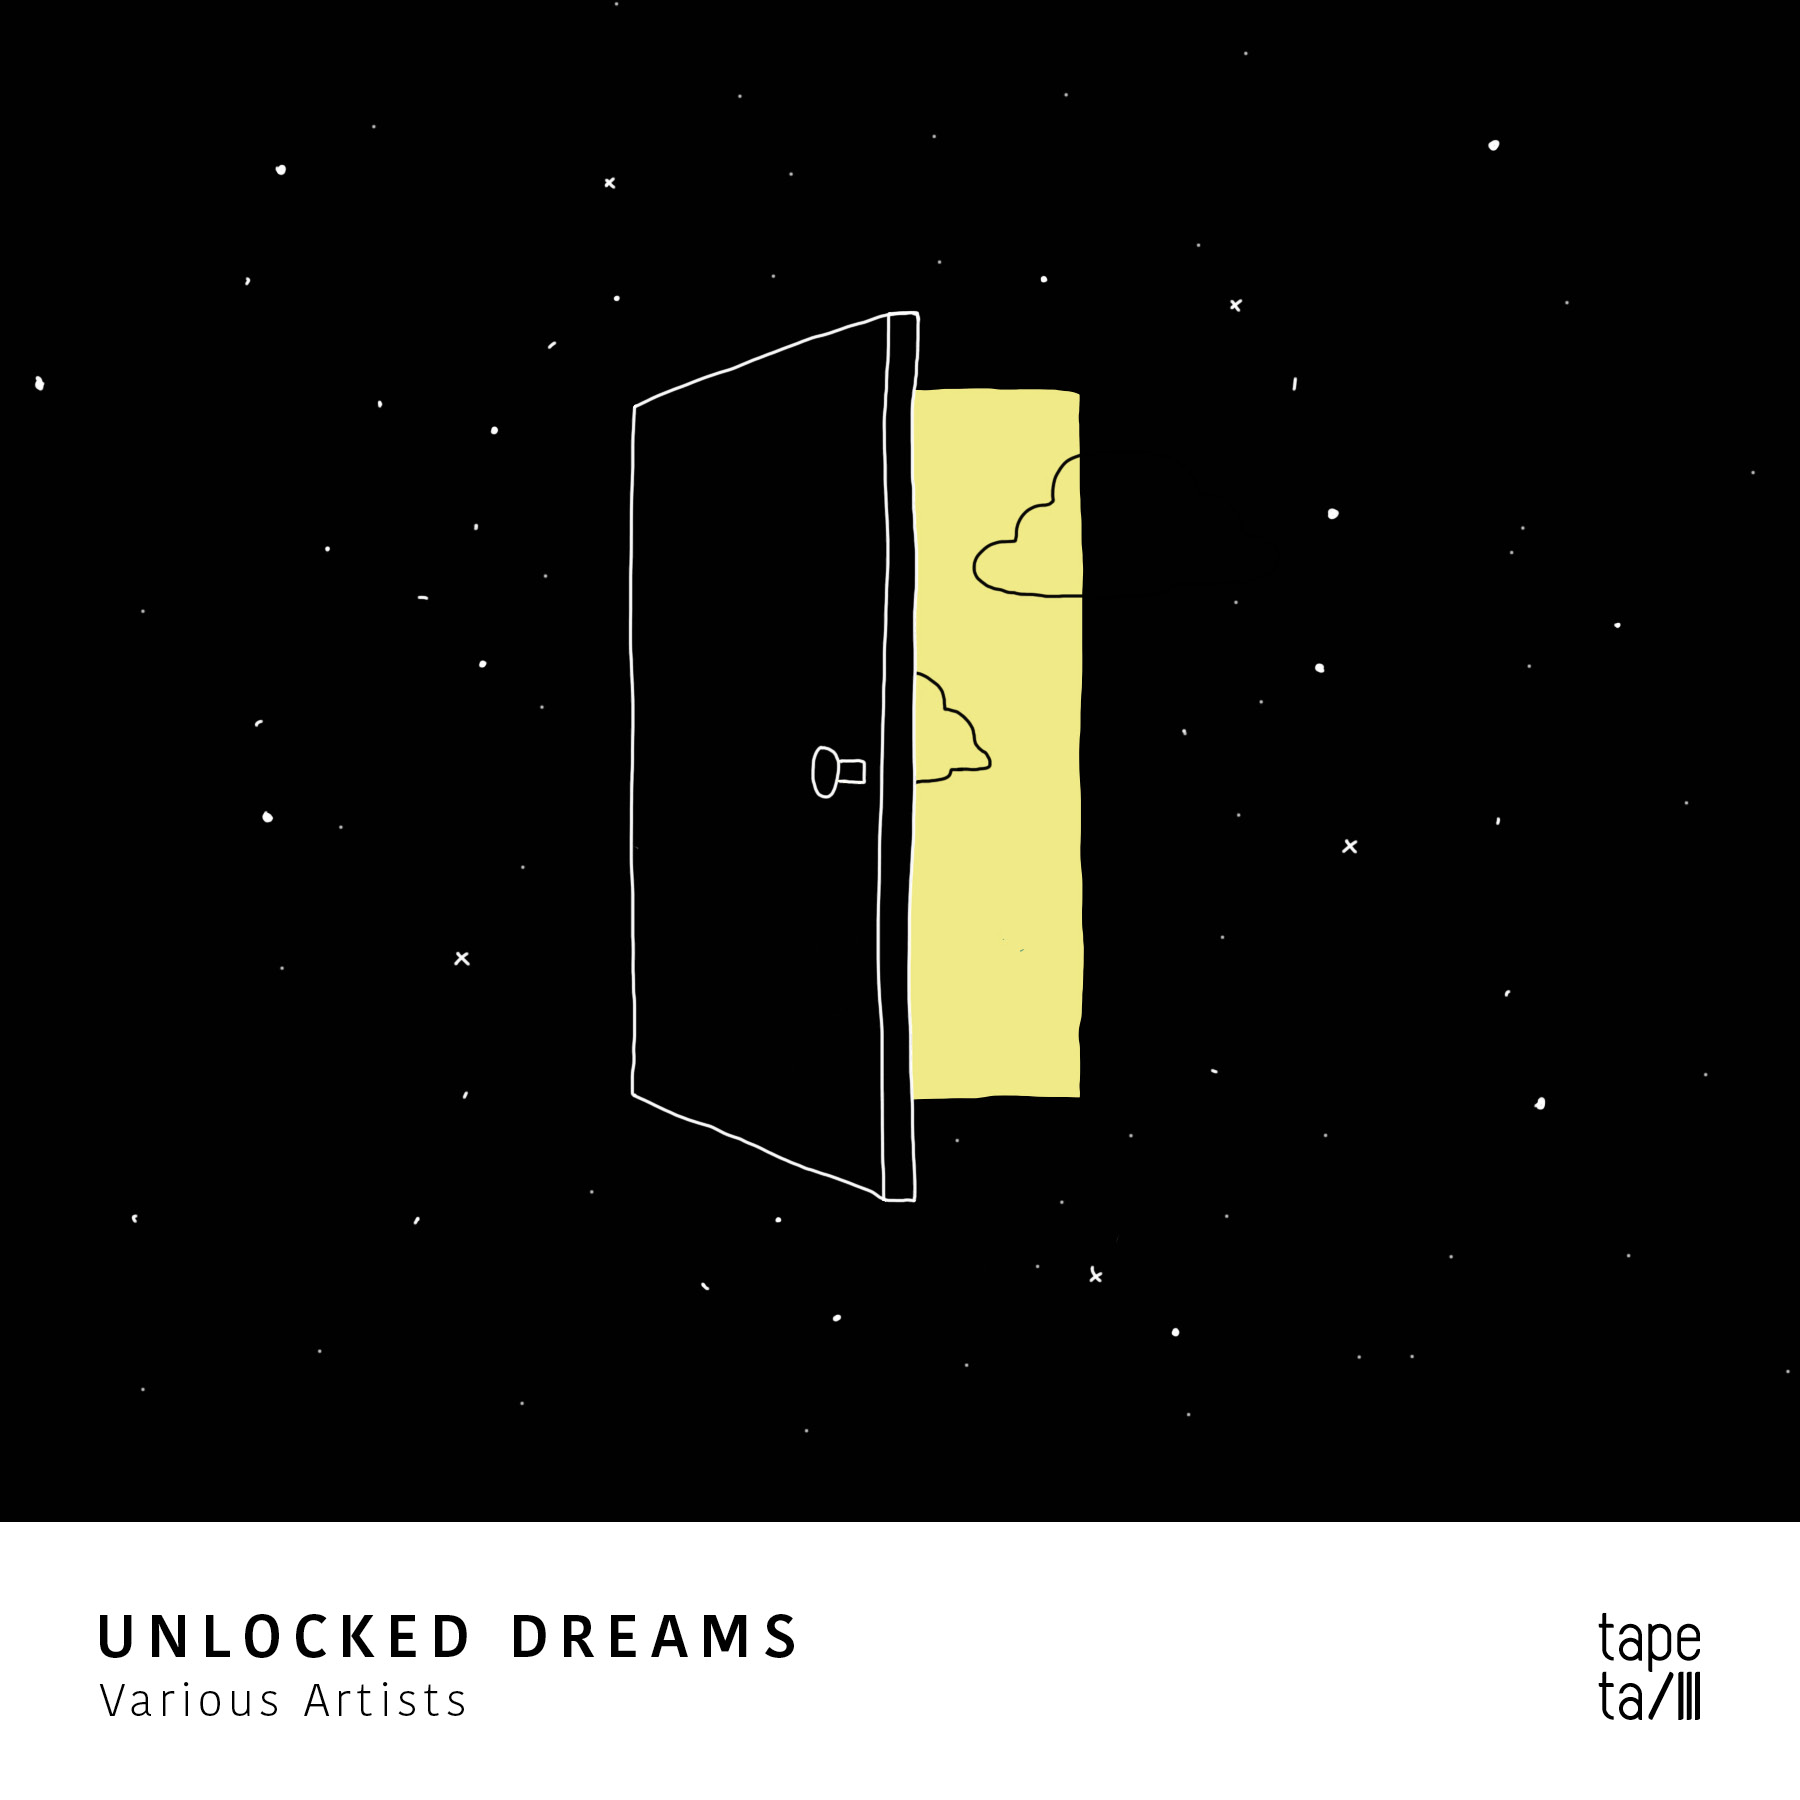 UNLOCKED DREAMS: EVASIONE DALLA PANDEMIA